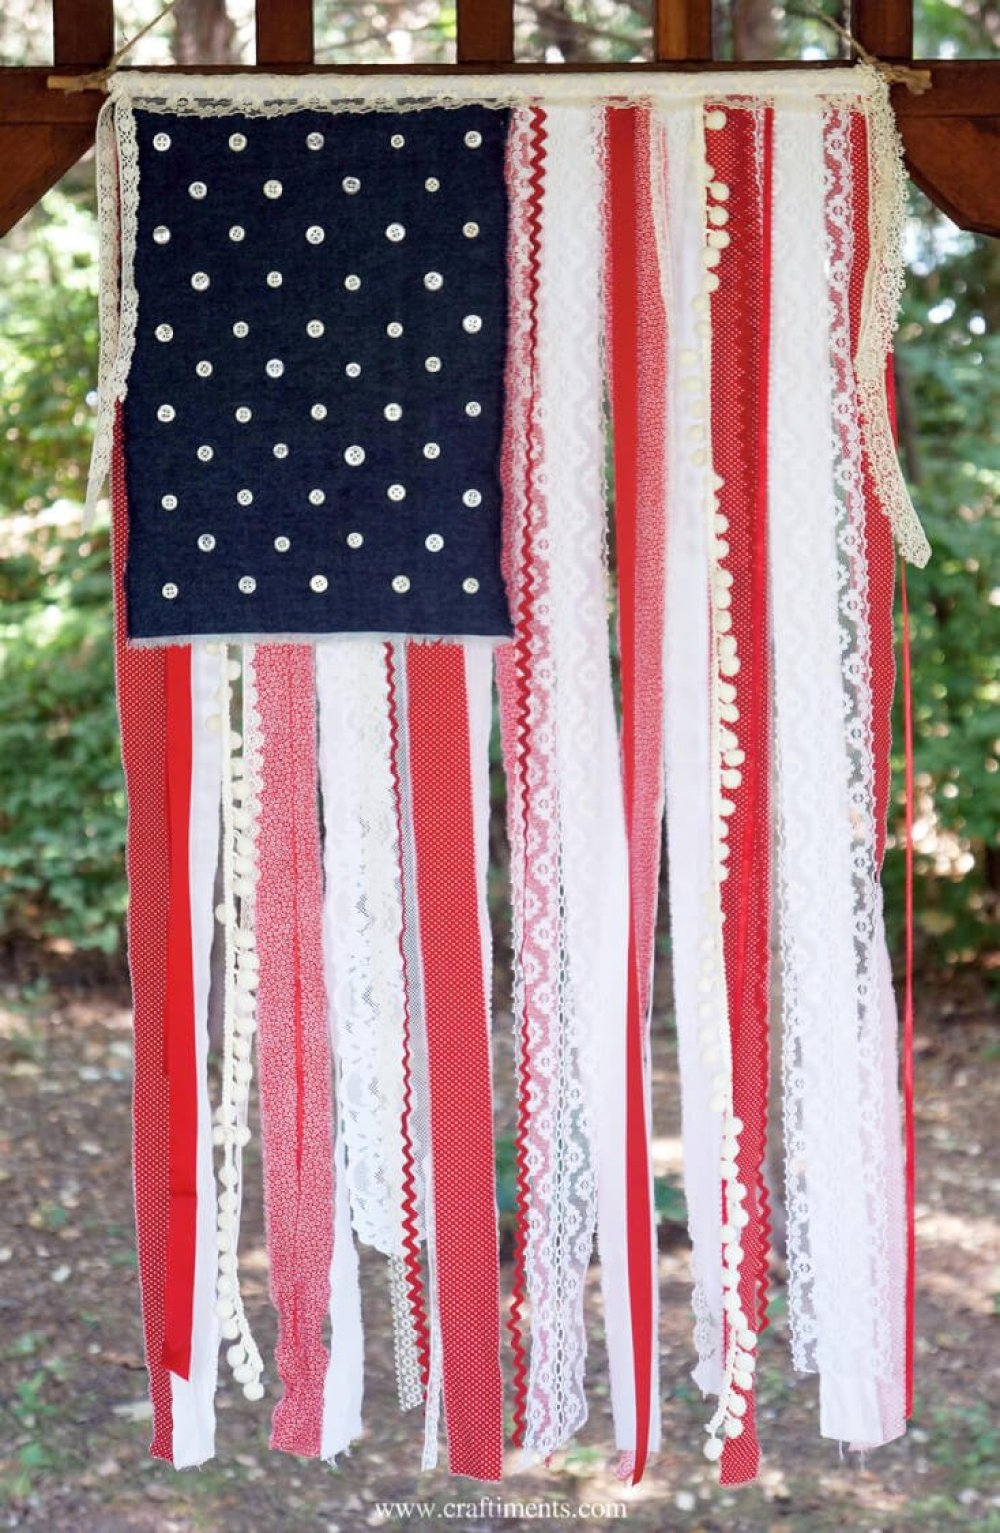 I'm a huge fan of 4th of July ribbon projects! Ribbon is so versatile, so I've rounded up a ton of fun , patriotic ideas for you to celebrate the 4th!